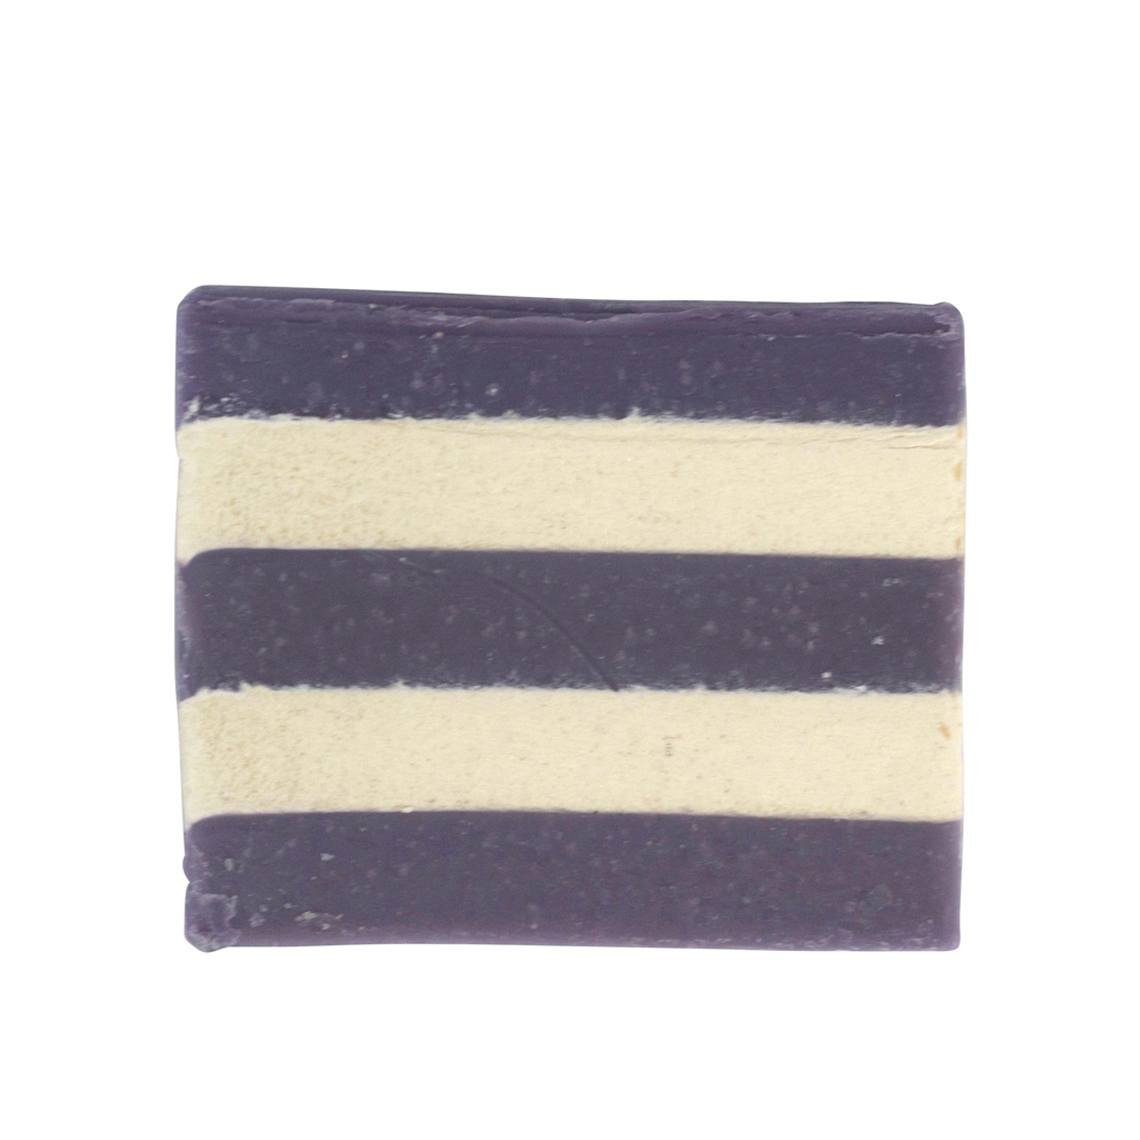 Sumbody Goats in the Lavender Natural Soap